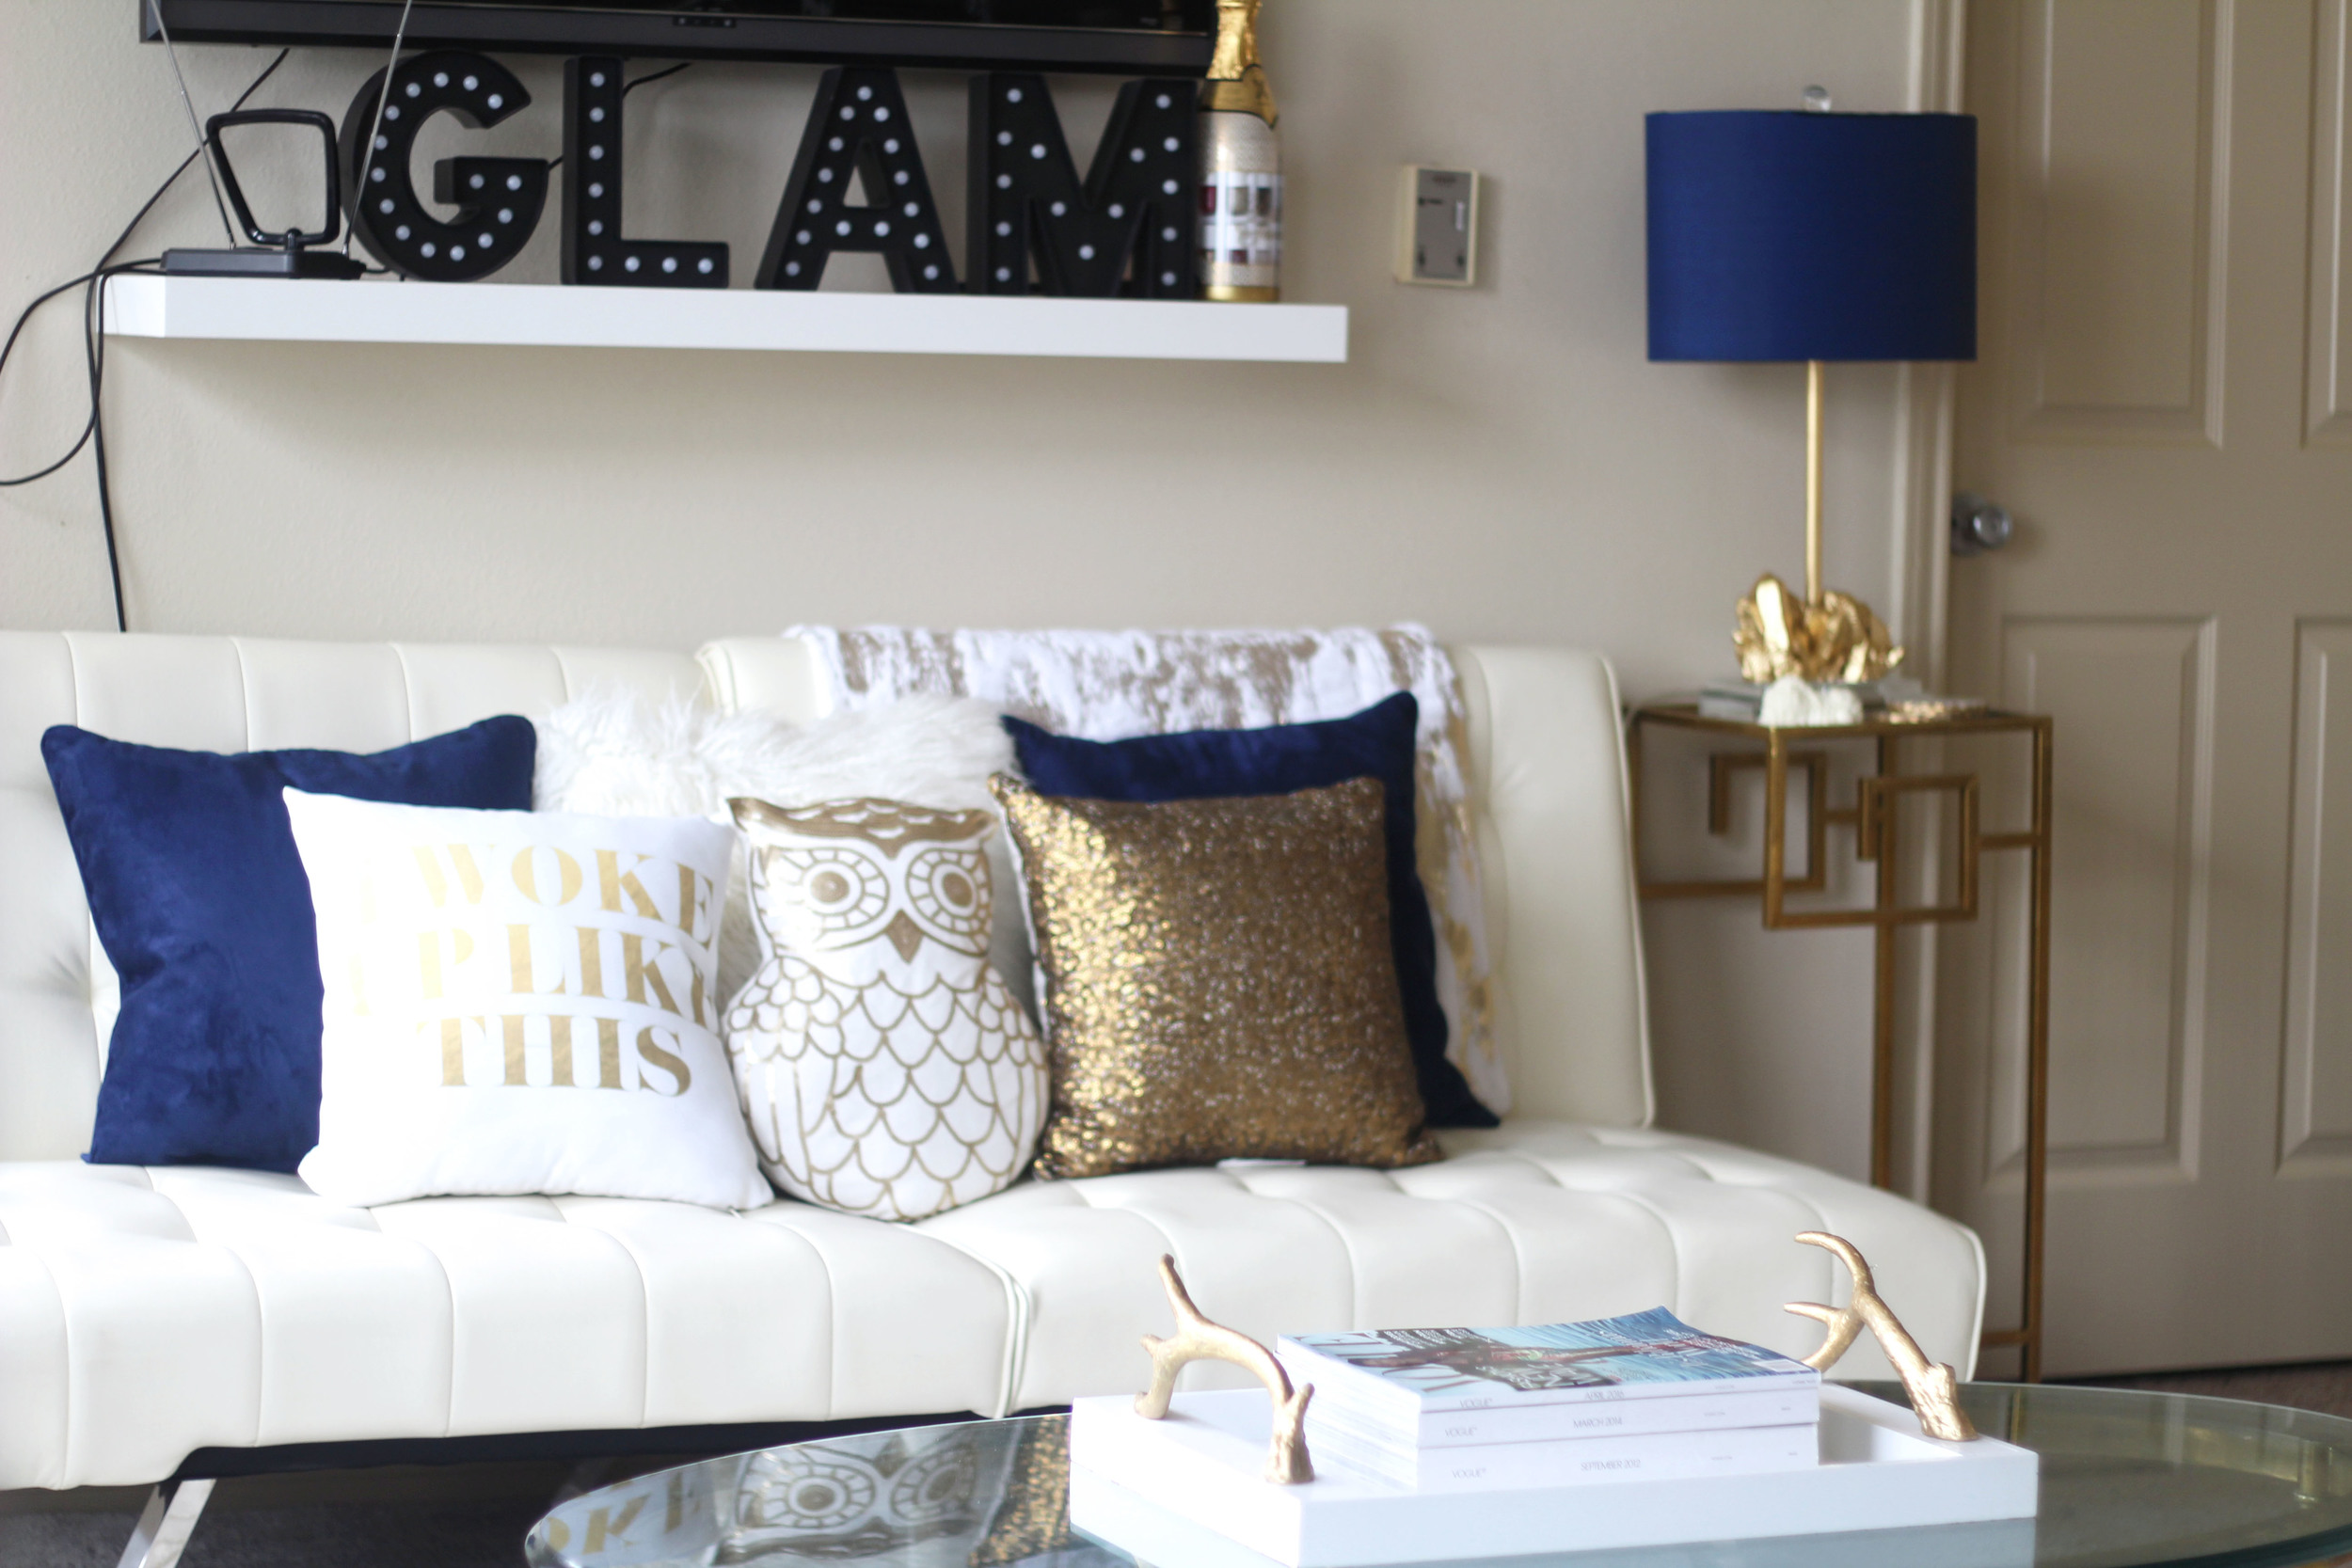 Attirant 6 Easy Ways To Update Accent Decor | Royal Blue + Gold